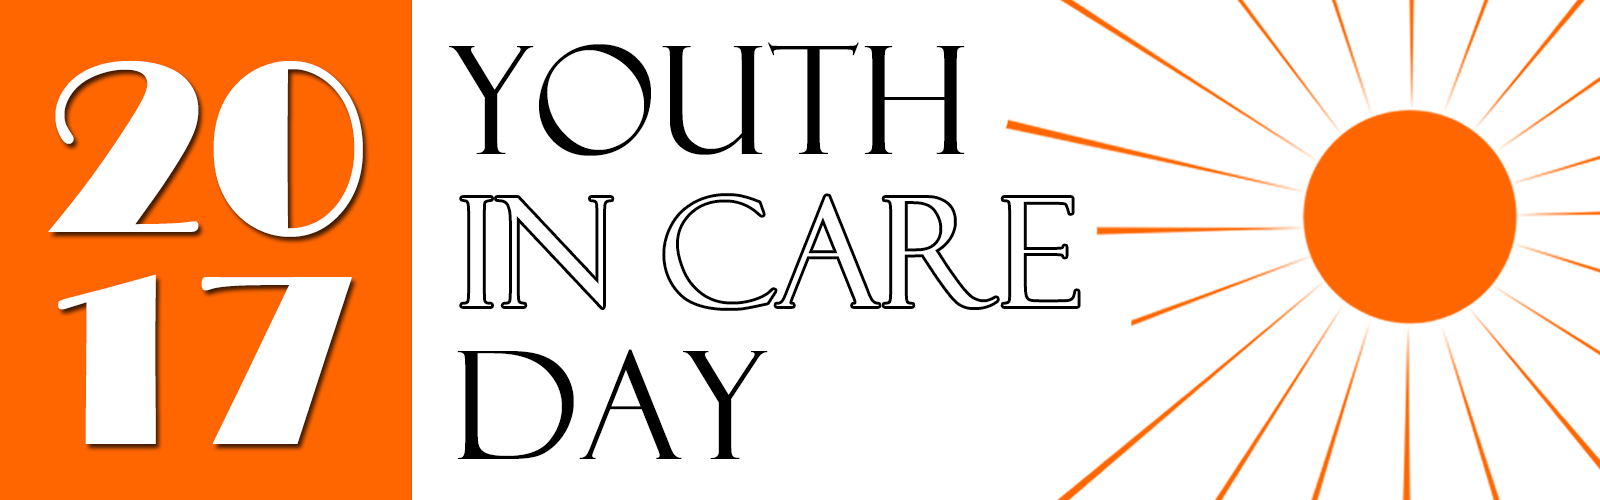 November 29th is Children and Youth in Care Day